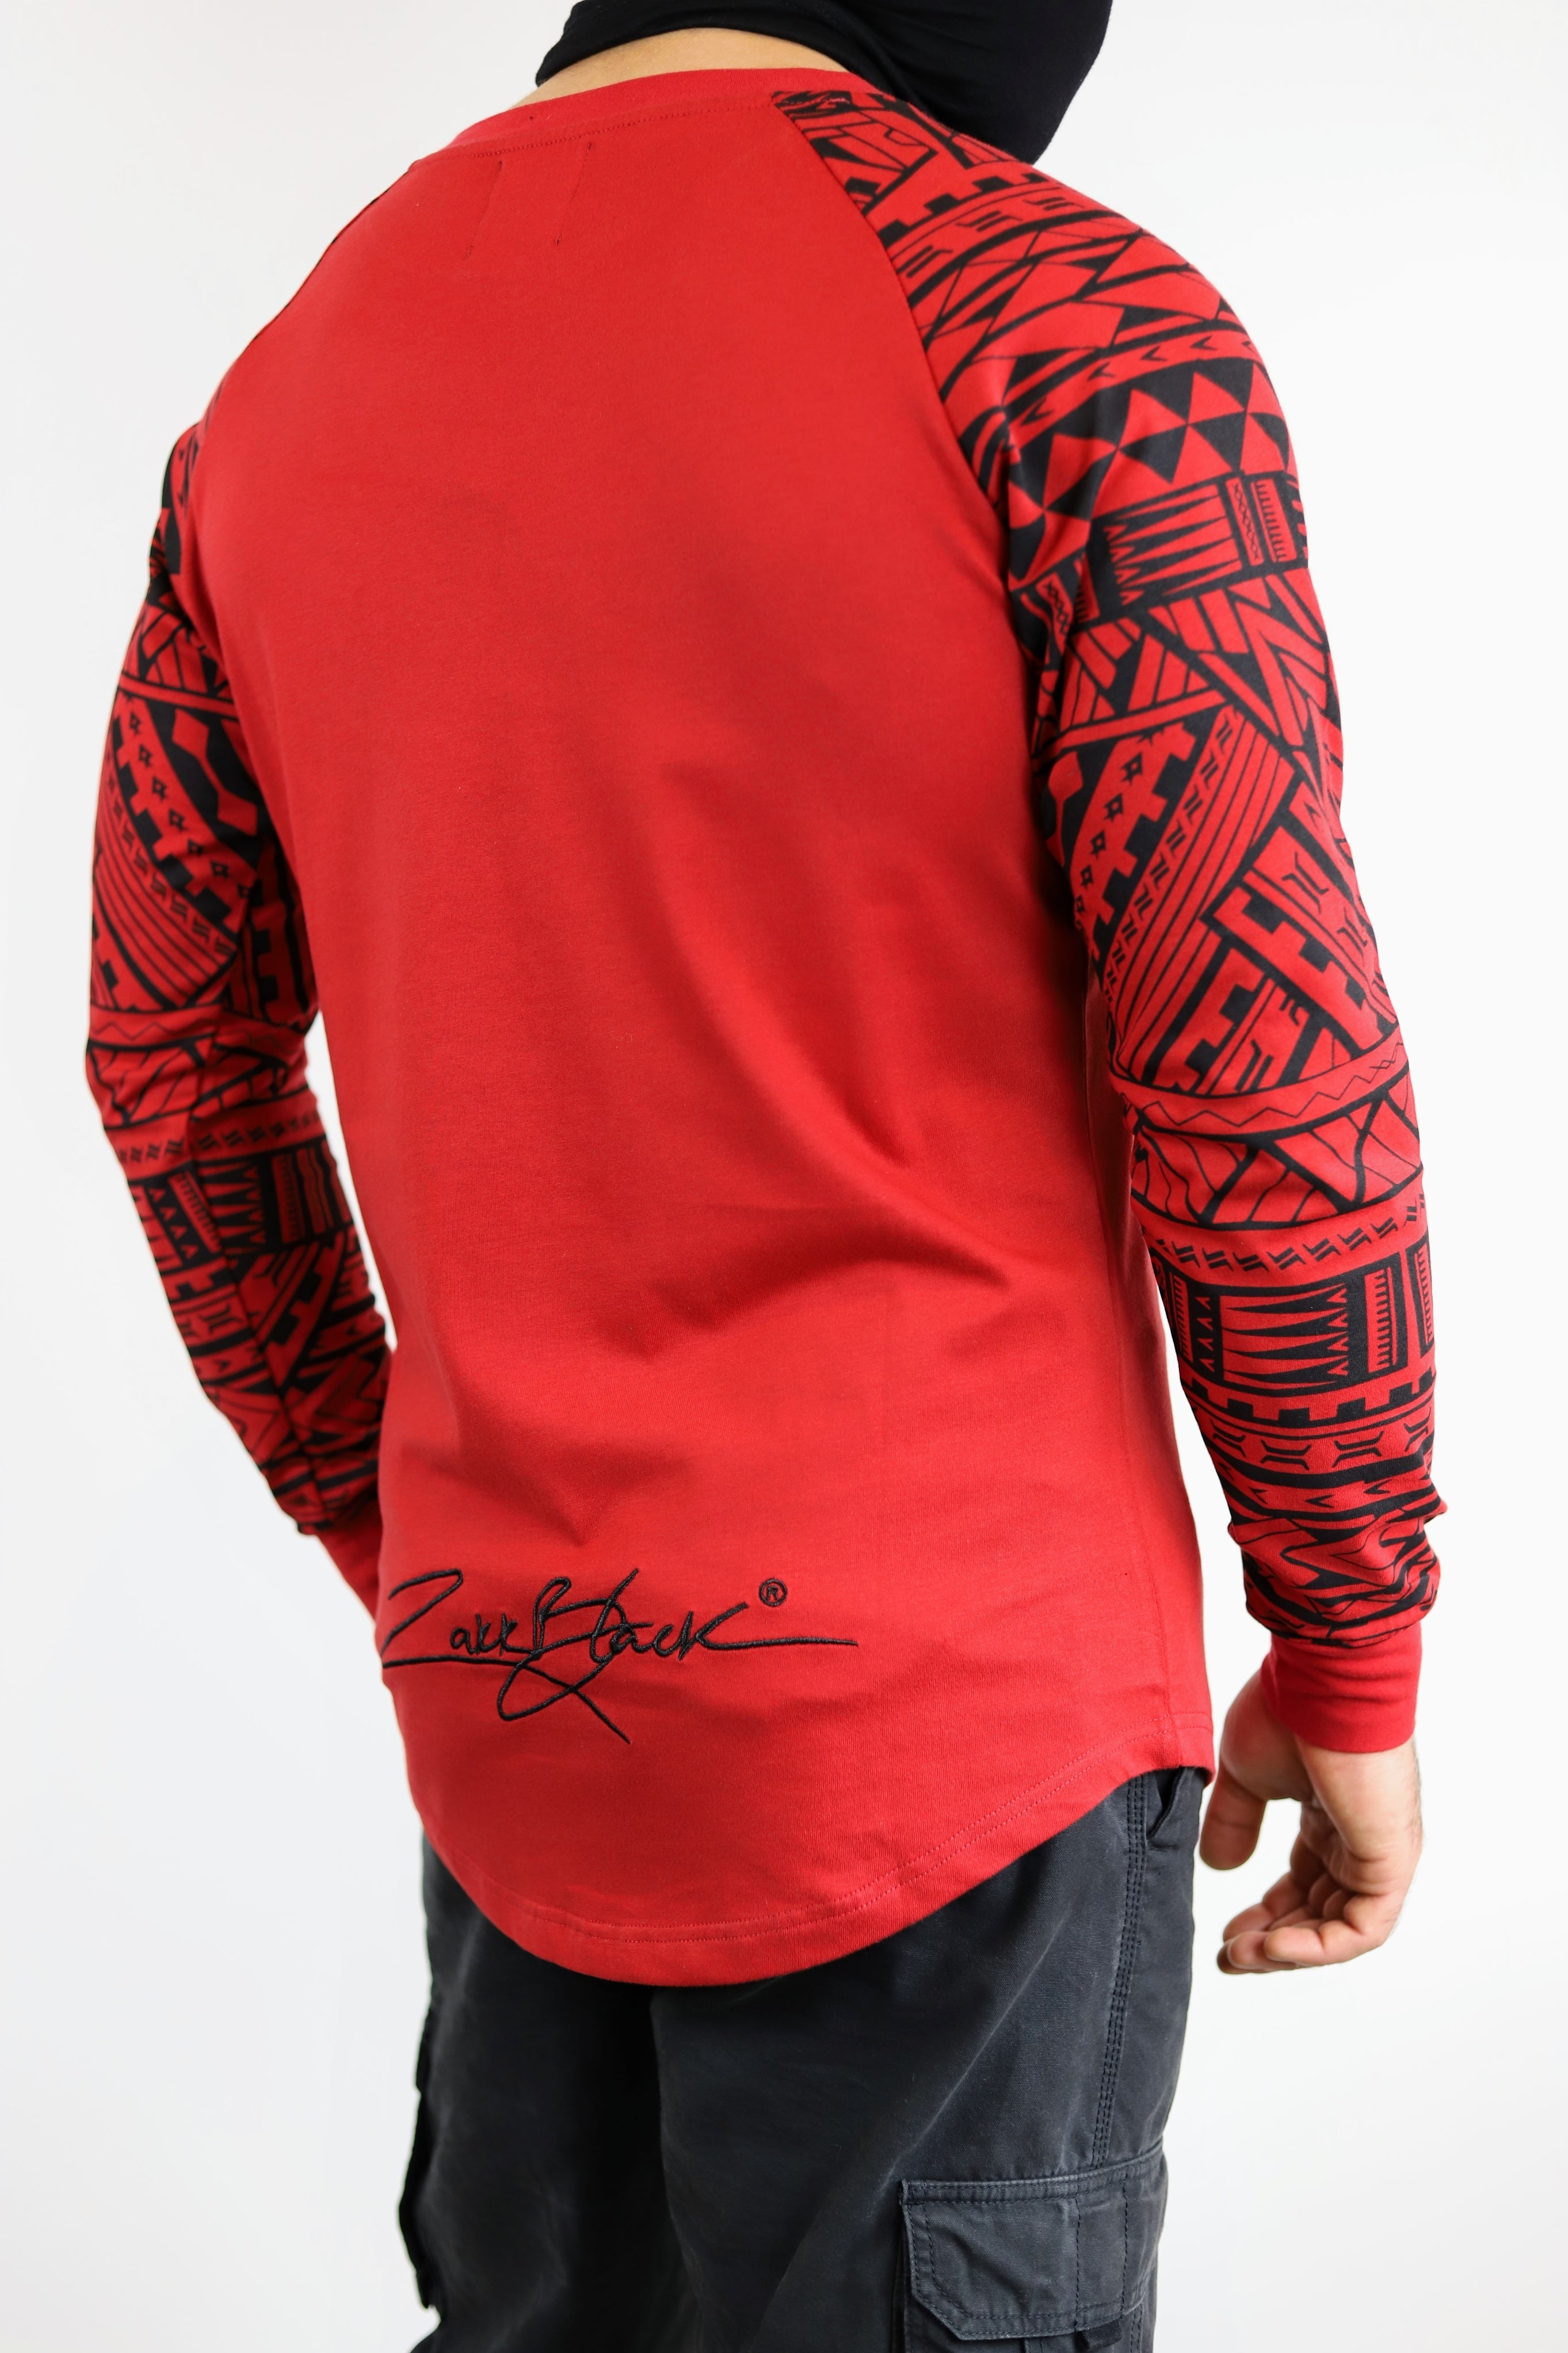 Heavyweight Premium Unisex RED Long Sleeve